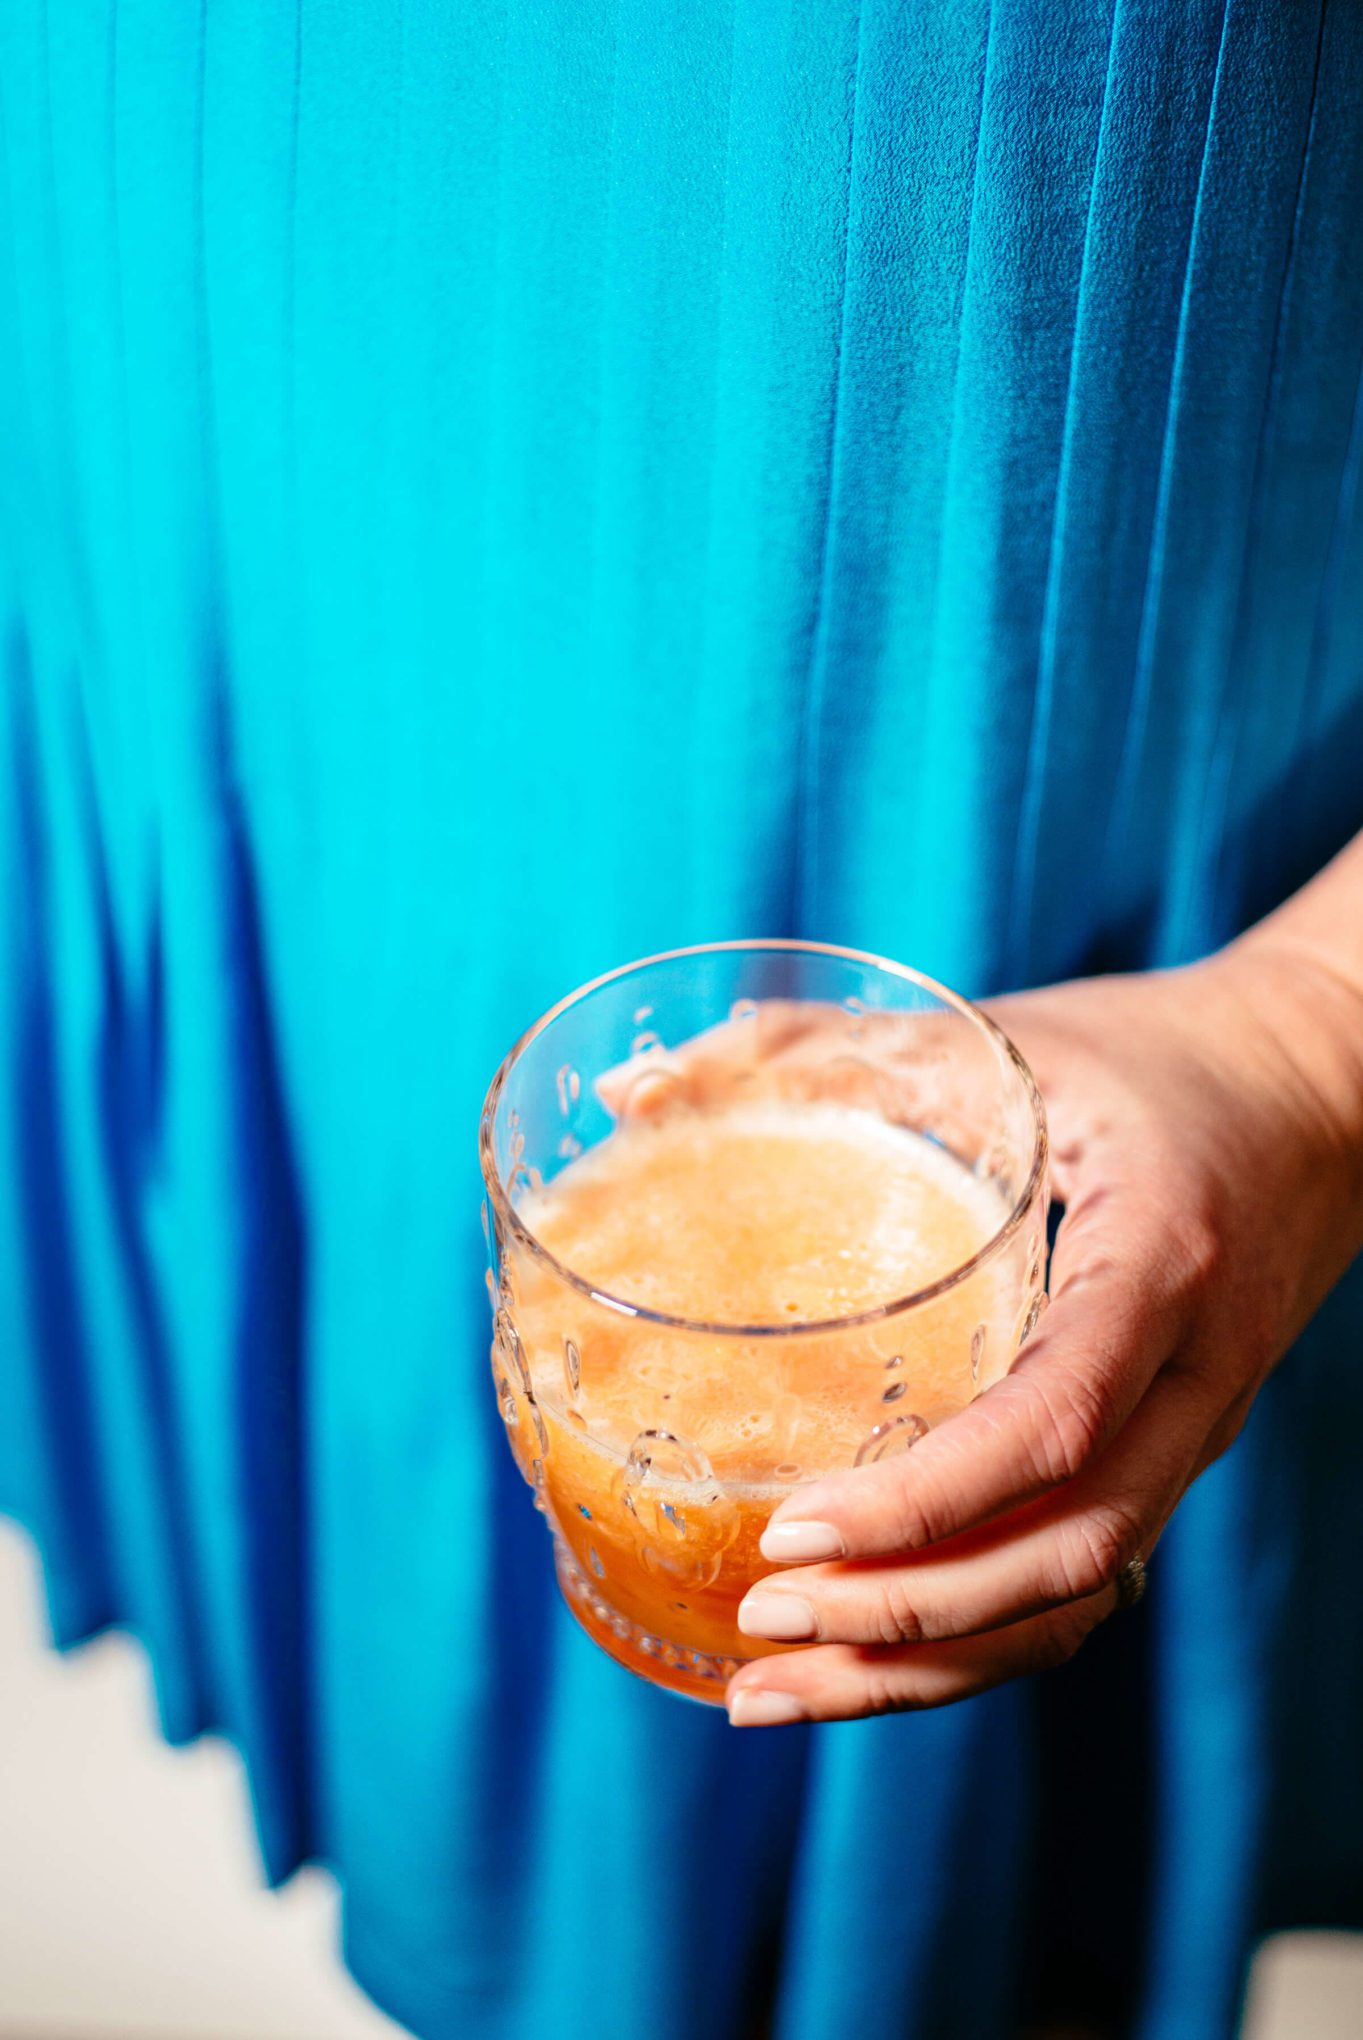 The Taste SF makes a Blood Orange and Prosecco Cocktail